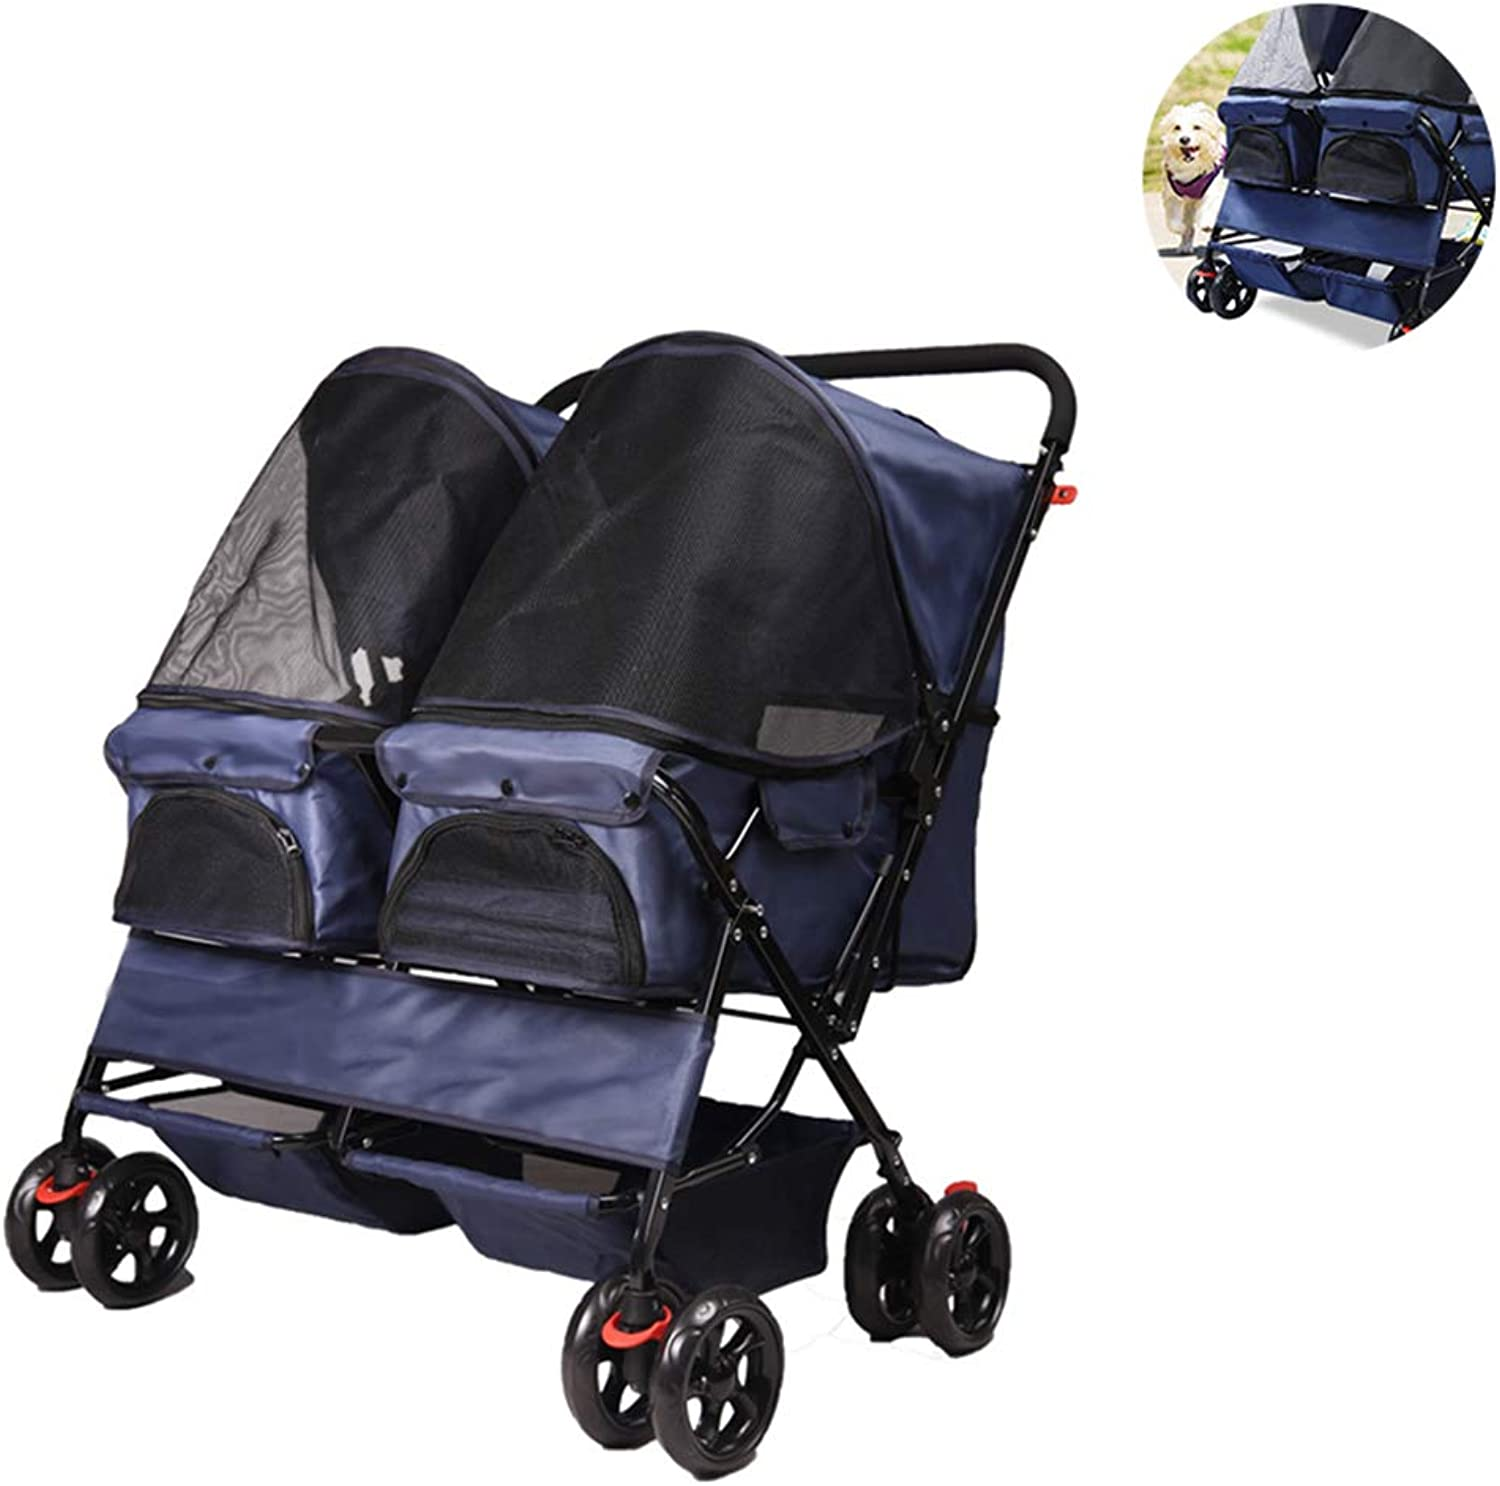 PETSUPPLY Pet Travel Stroller Cat Dog Pushchair Trolley Puppy Jogger Carrier Four Wheels,Foldable,Suitable For Puppies, Cats,A